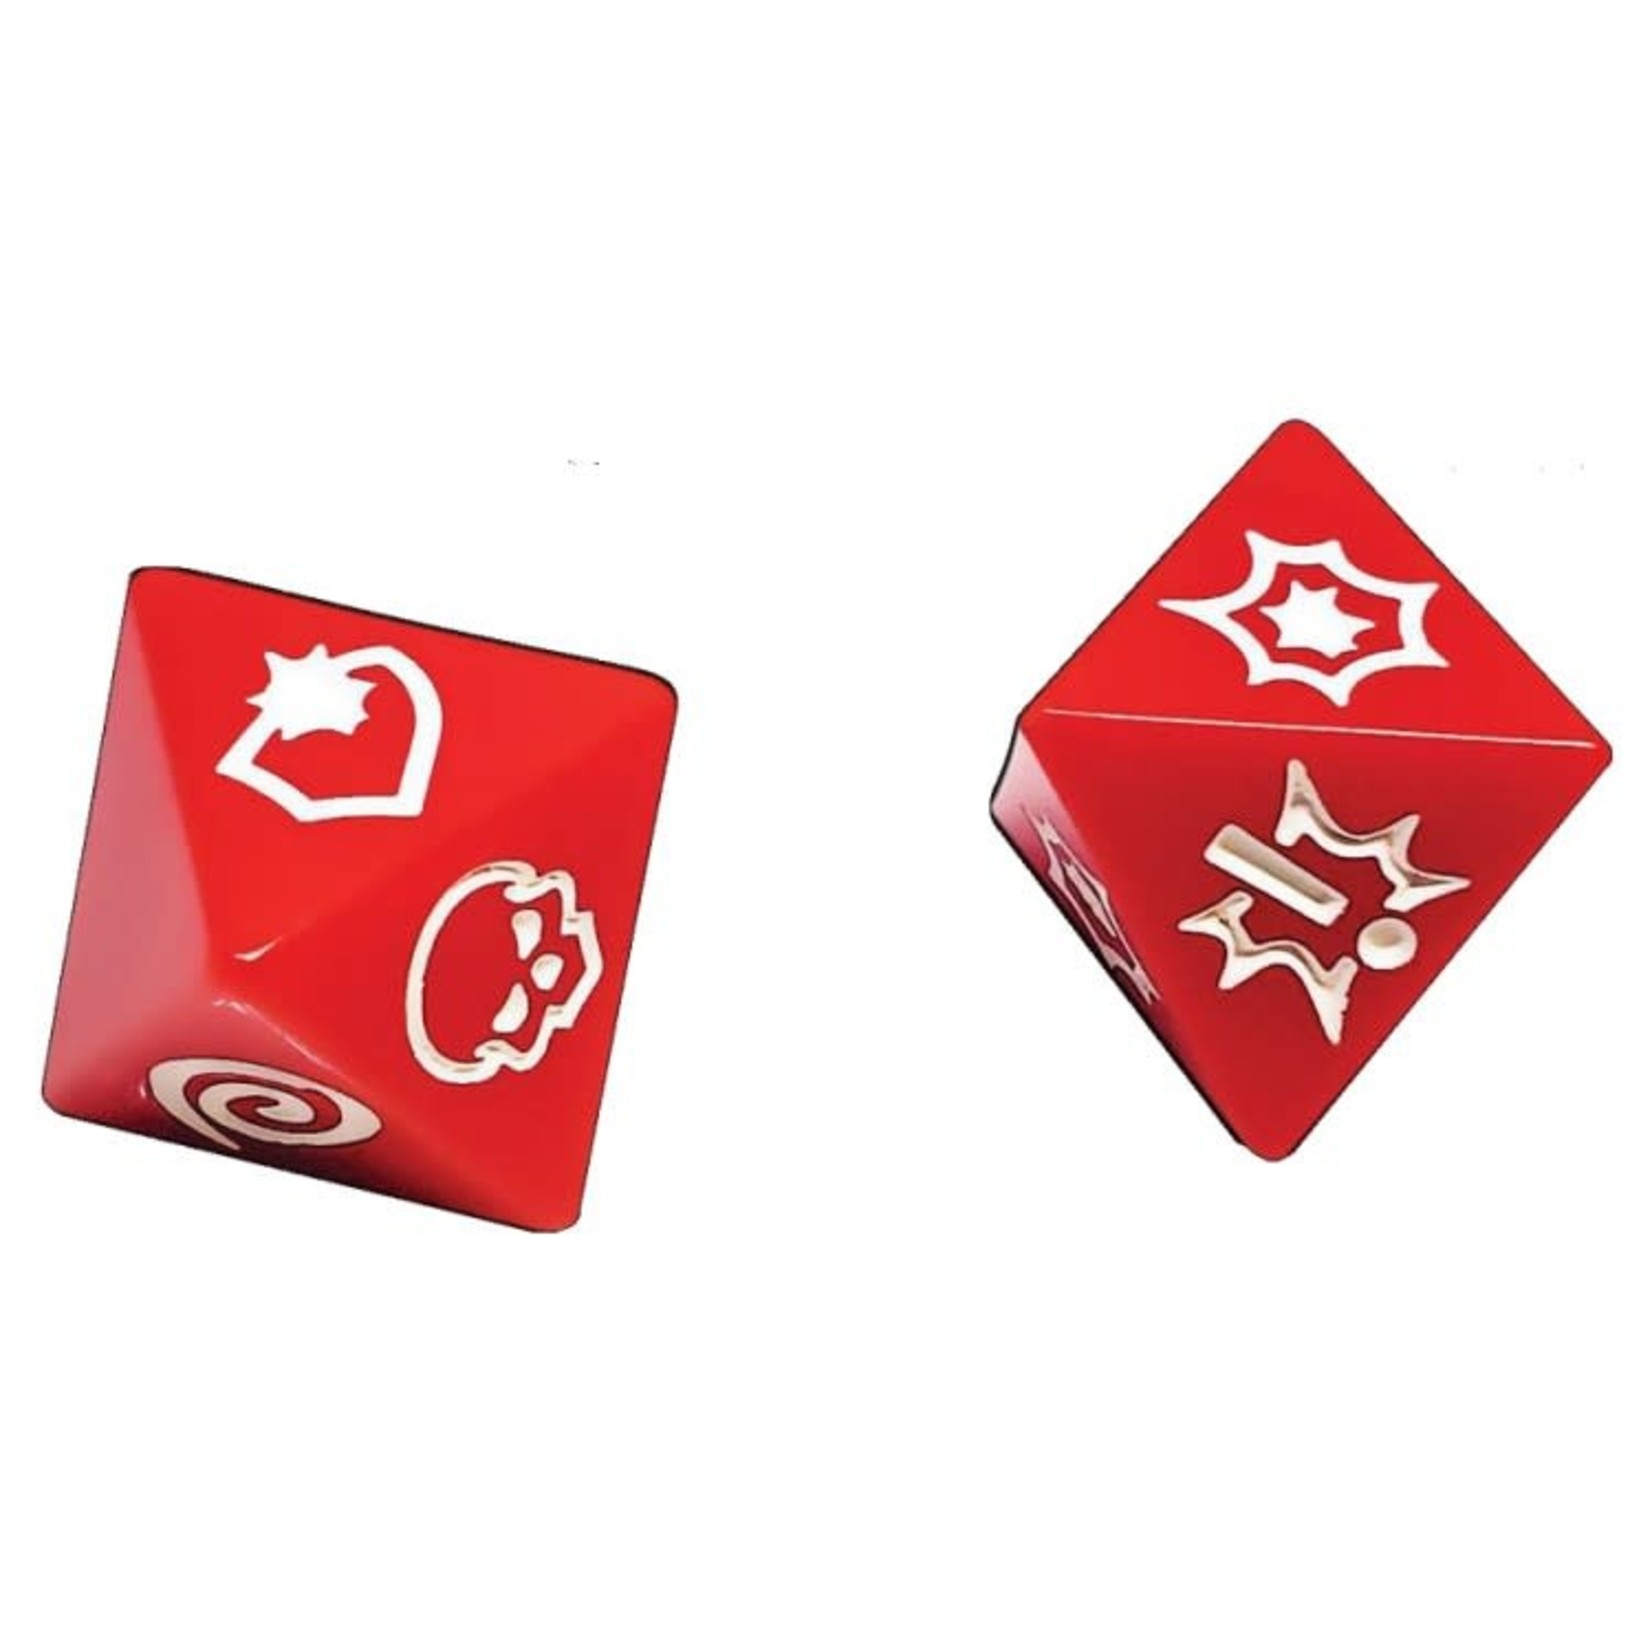 Asmodee Editions Marvel Crisis Protocol: Dice Set